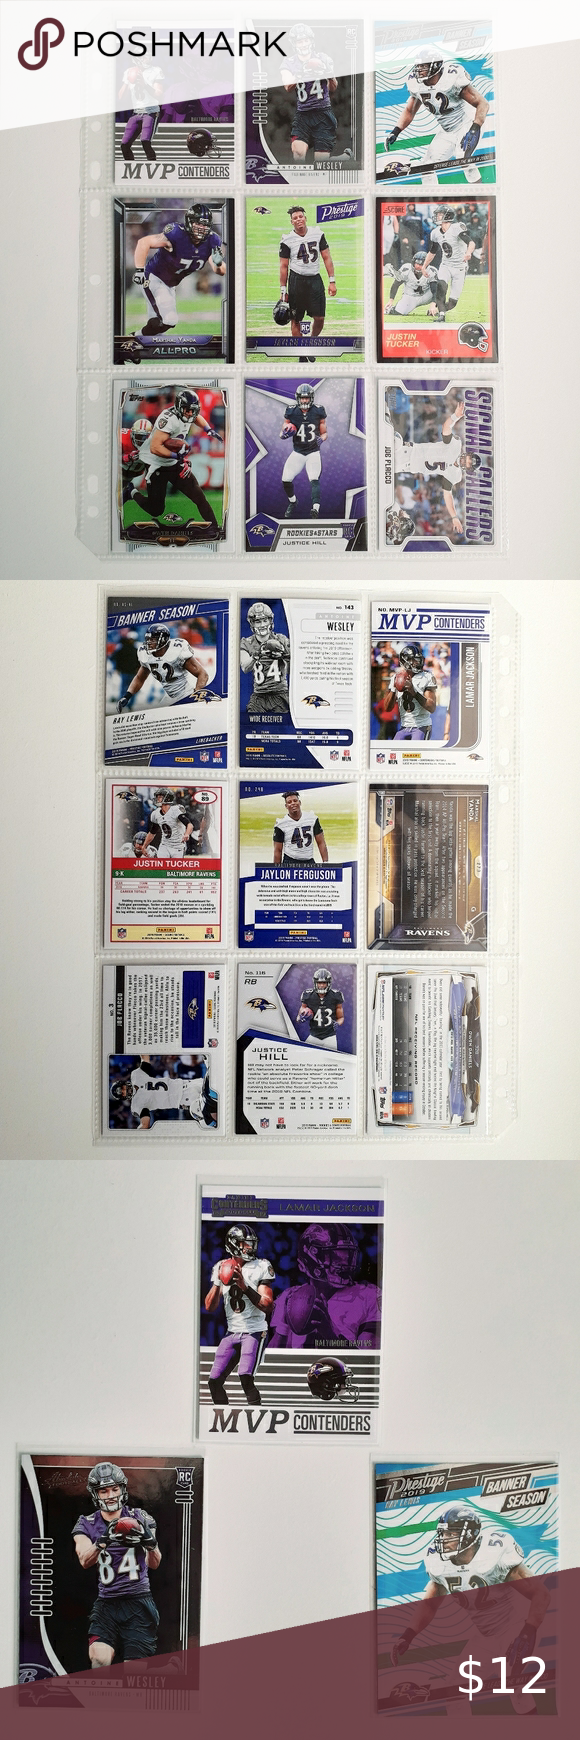 Baltimore Ravens 9 Card Lot [FBL3_1] ThisBaltimore Ravensfootball card lot will include every card pictured. You will receive the following 9 cards:  2019 Panini Contenders MVP #16Lamar Jackson 2019 Absolute #143Antoine Wesley RC 2019 Prestige Banner Season #6Ray Lewis 2015 Topps All Pro #273Marshal Yanda RC 2019 Prestige #248Jaylon Ferguson RC 2019 Score Black #89Justin Tucker 2014 Topps #328Owen Daniels 2019 Rookies & Stars #116Justice Hill RC 2018 Score Signal Callers #3Joe Flacc